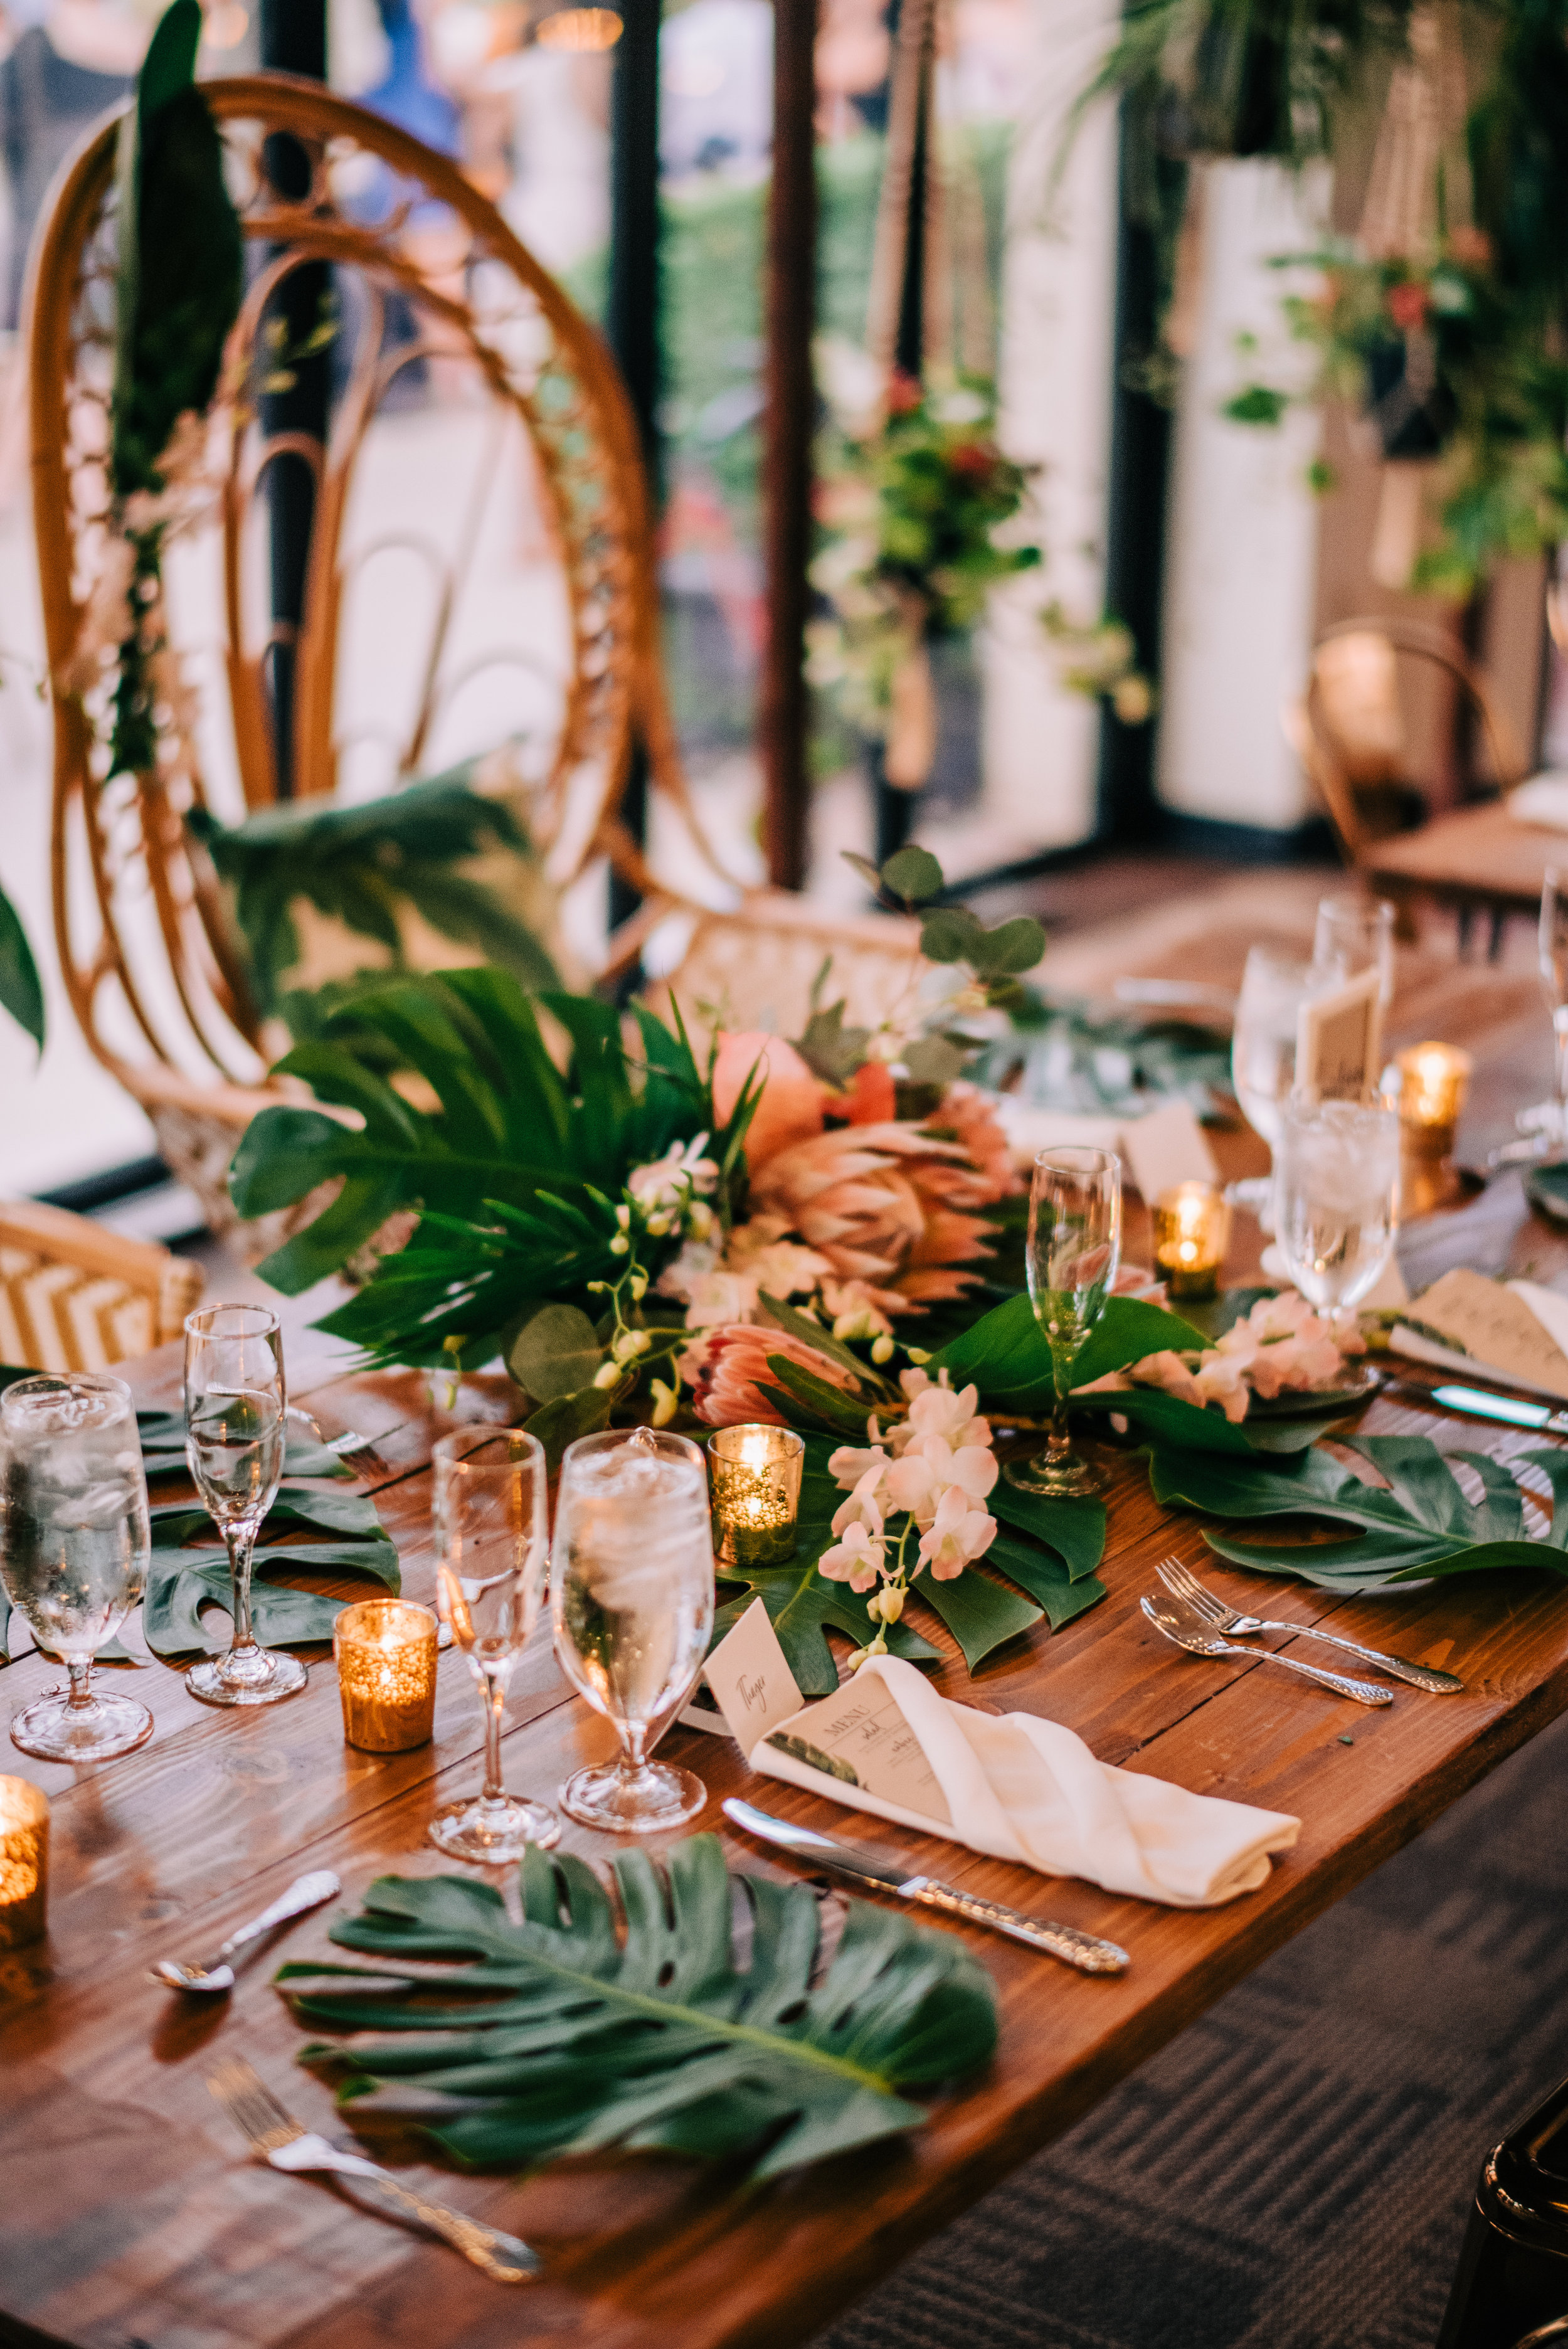 27 bride bouquet as head table centerpiece reception place setting bride special chair tropical theme wedding Life Design Events photos by Josh Snyder Photography.jpg